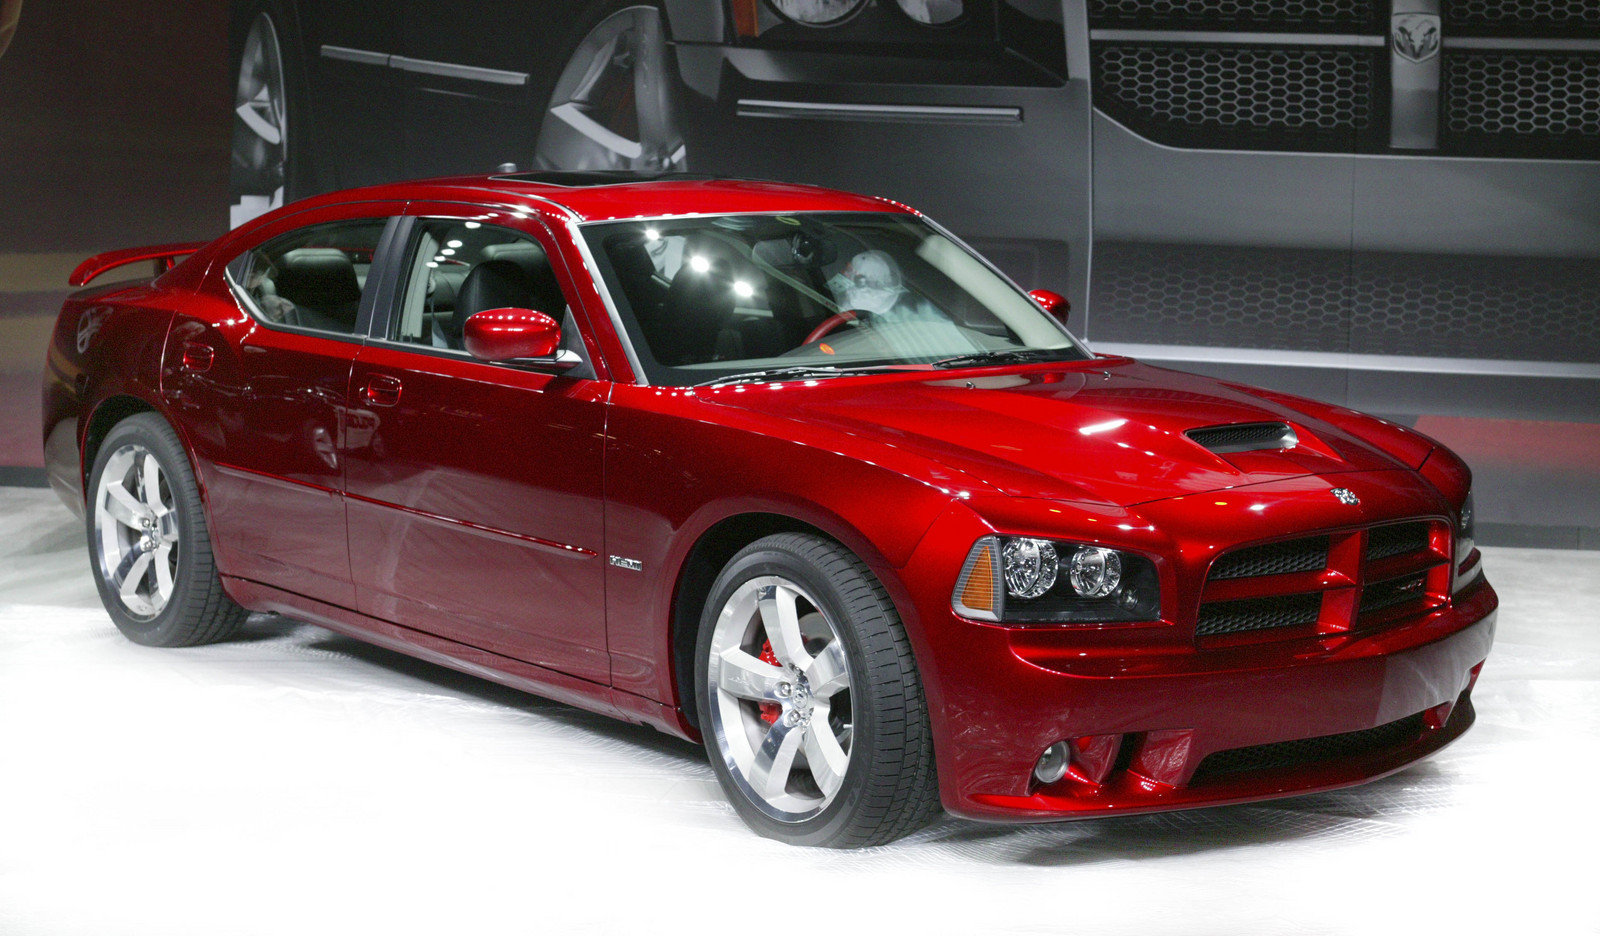 2006 dodge charger srt8 picture 85028 car review top speed. Black Bedroom Furniture Sets. Home Design Ideas